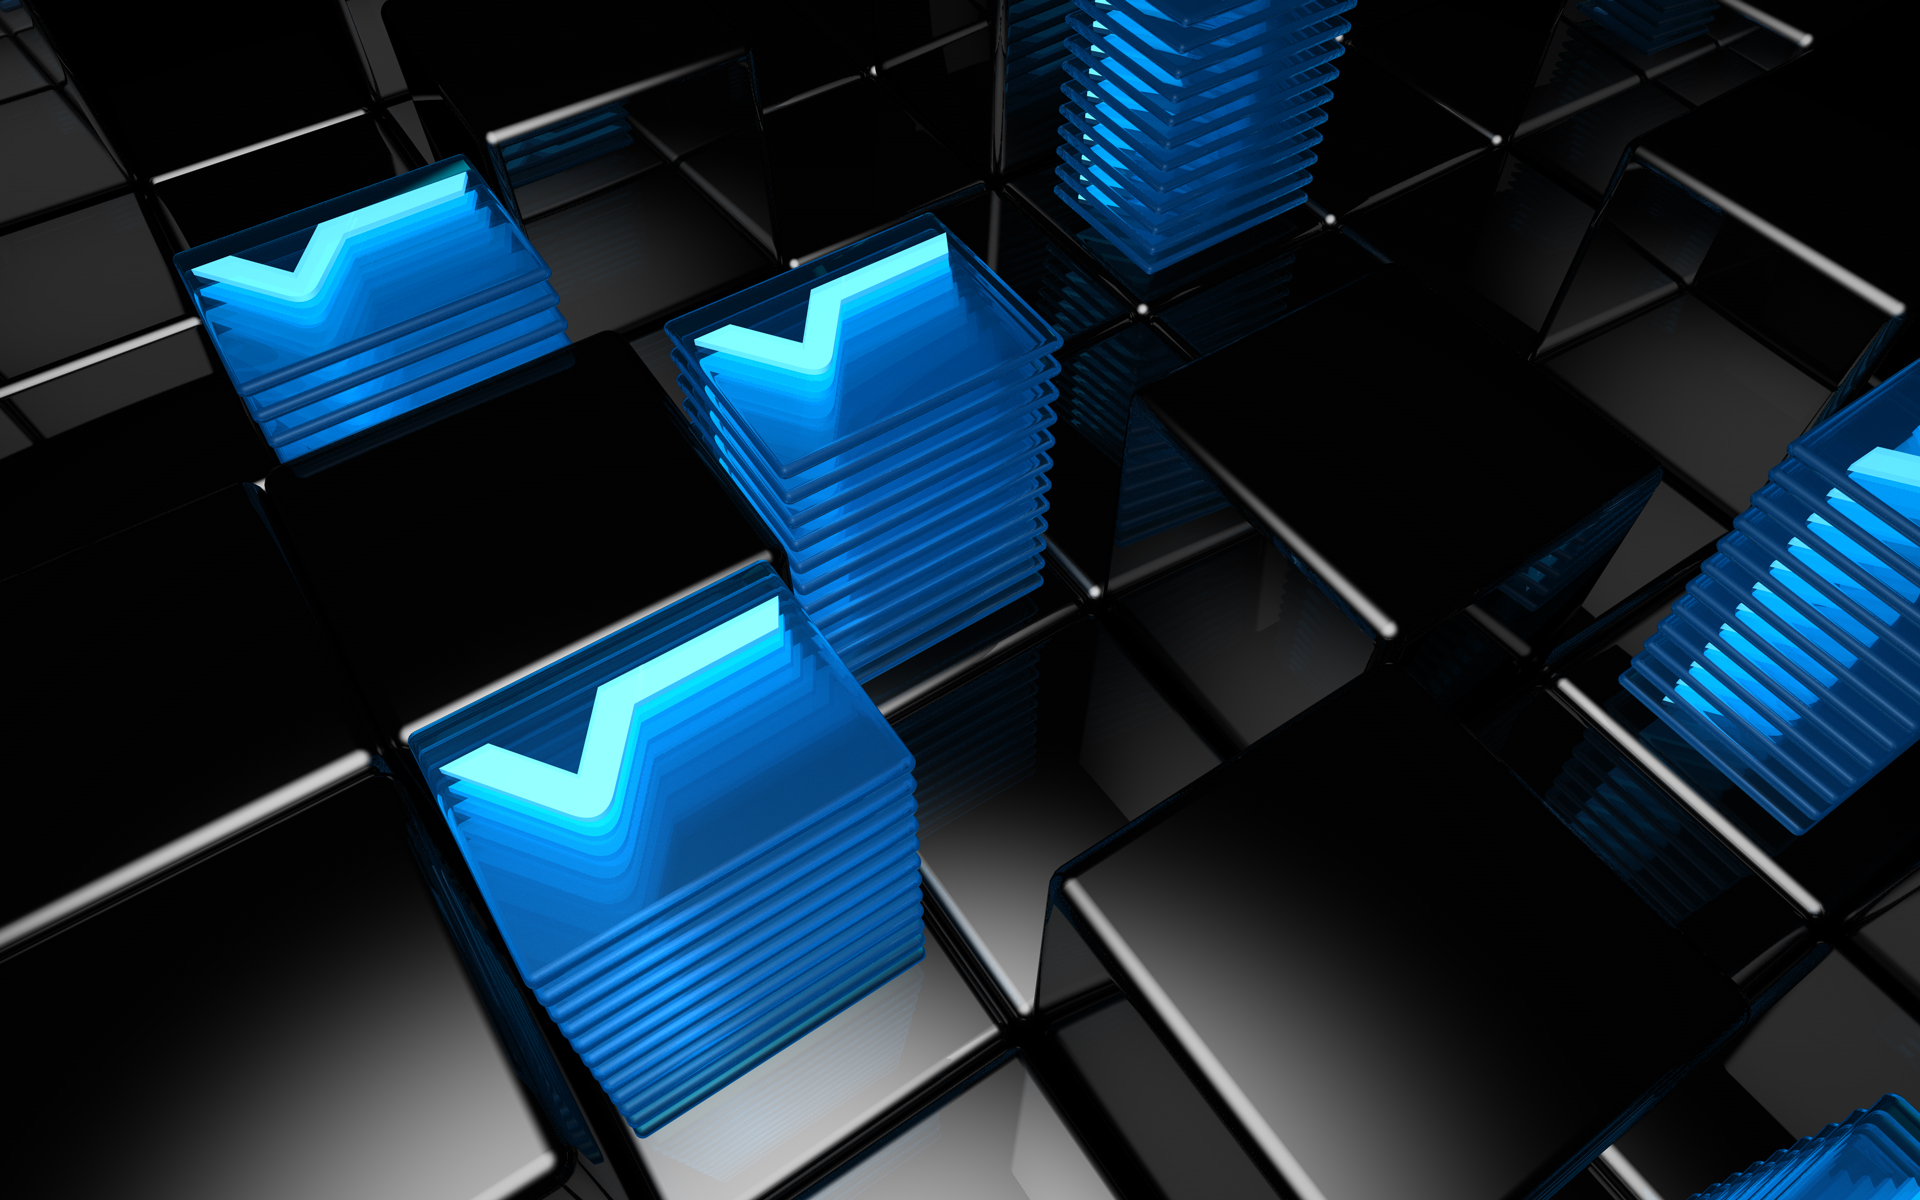 3d Cube In Black And Blue Abstract Qhd Wallpaper: Le Fancy Wallpapers